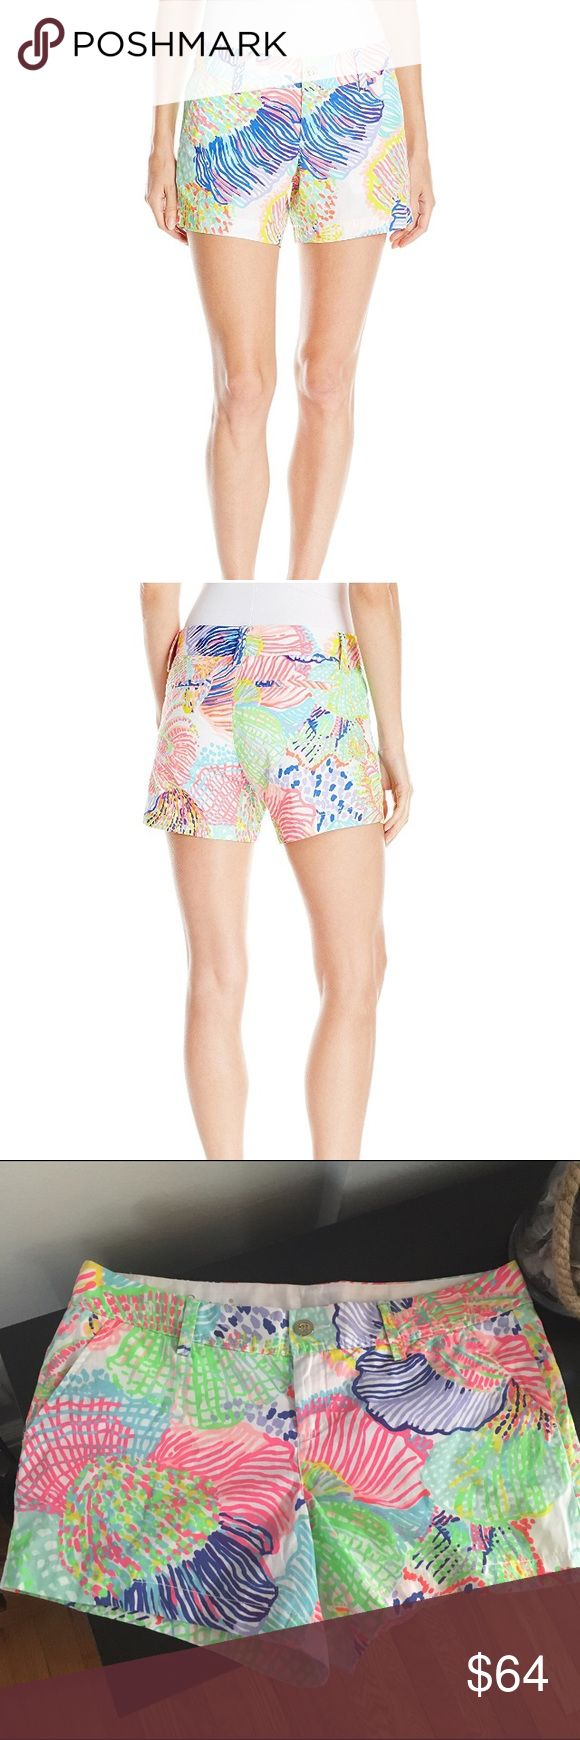 NWT Lilly Pulitzer Callahan Short Roar of the Seas Brand new with tags. First two photos are stock photos from Amazon.com. Size 14, I have heard they run BIG, so this pair may fit more like a 16- not sure. Thanks for looking! Lilly Pulitzer Shorts